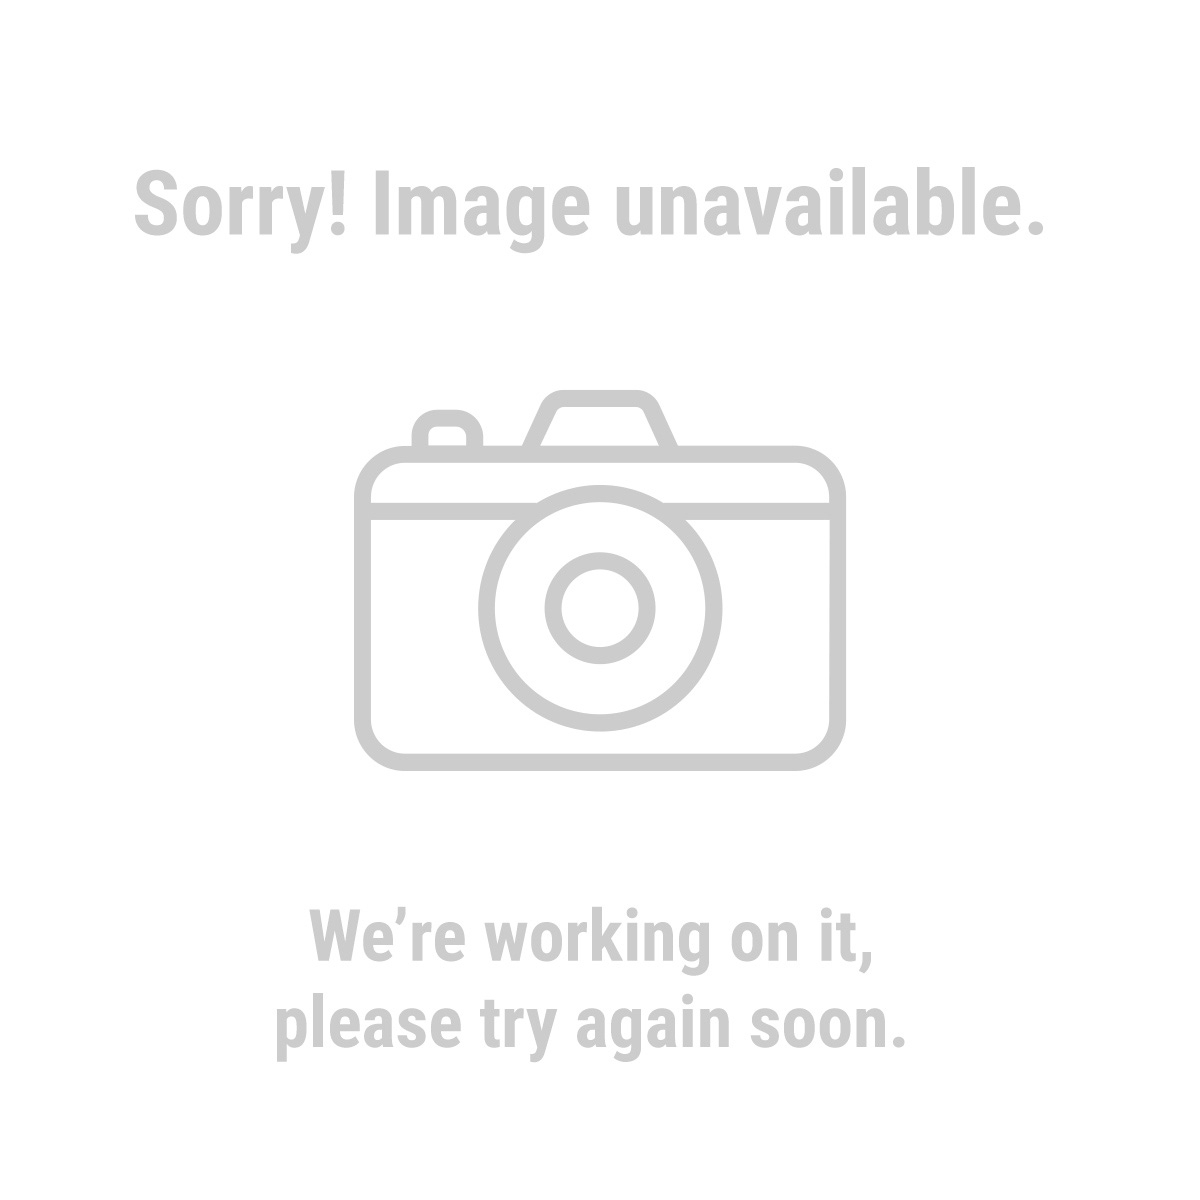 450 Lb. Capacity Low Lift Transmission Jack